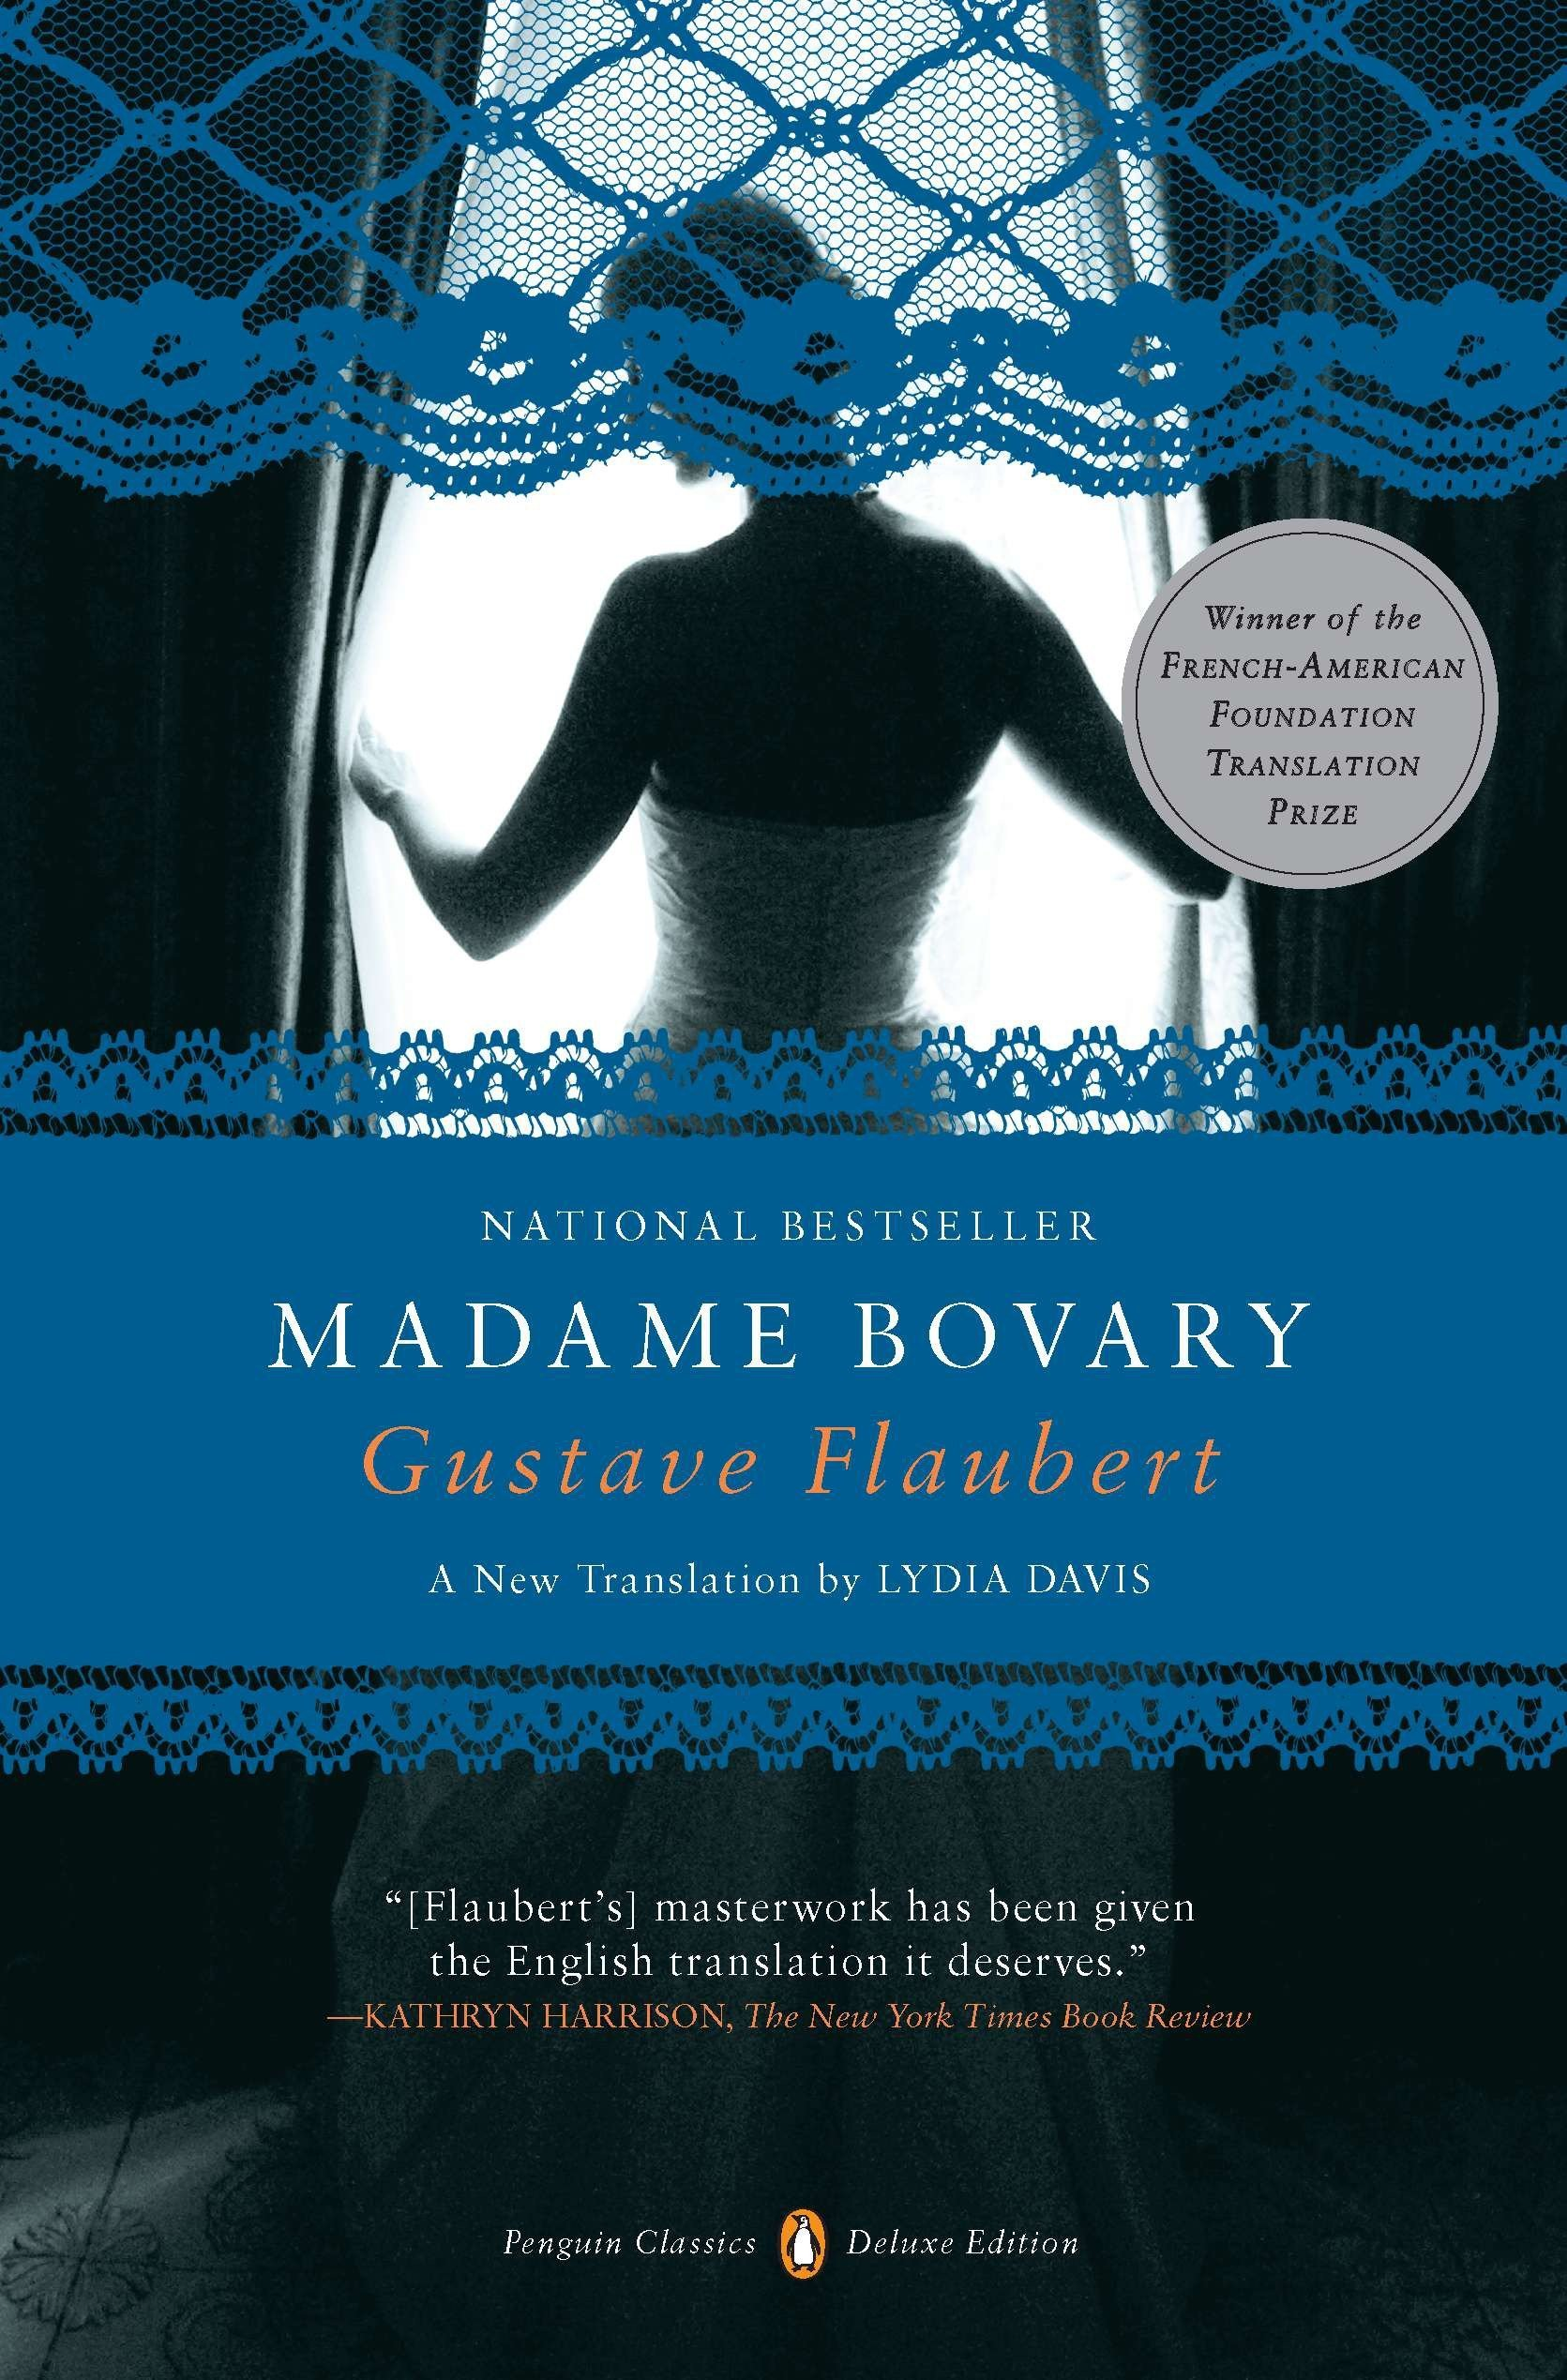 Amazon.com: Madame Bovary: (Penguin Classics Deluxe Edition)  (9780143106494): Gustave Flaubert, Lydia Davis: Books